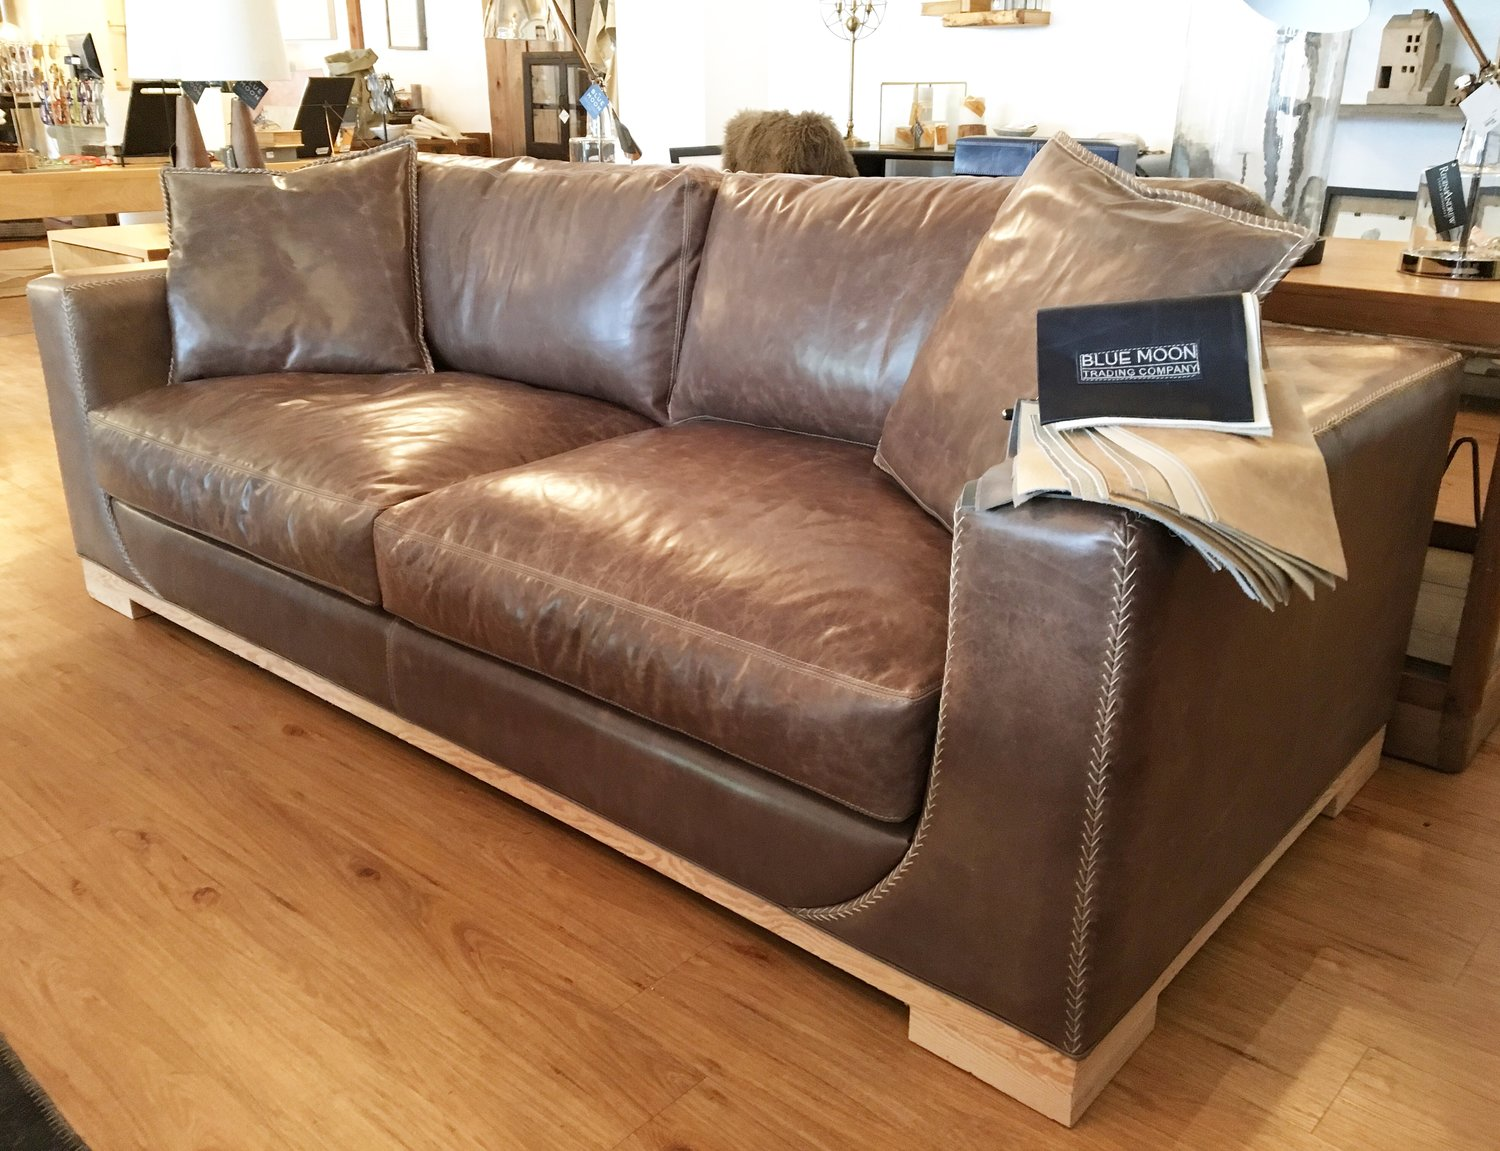 Bench Crafted Distressed Leather Sofa with Hand Stitching — Blue Moon  Trading Company